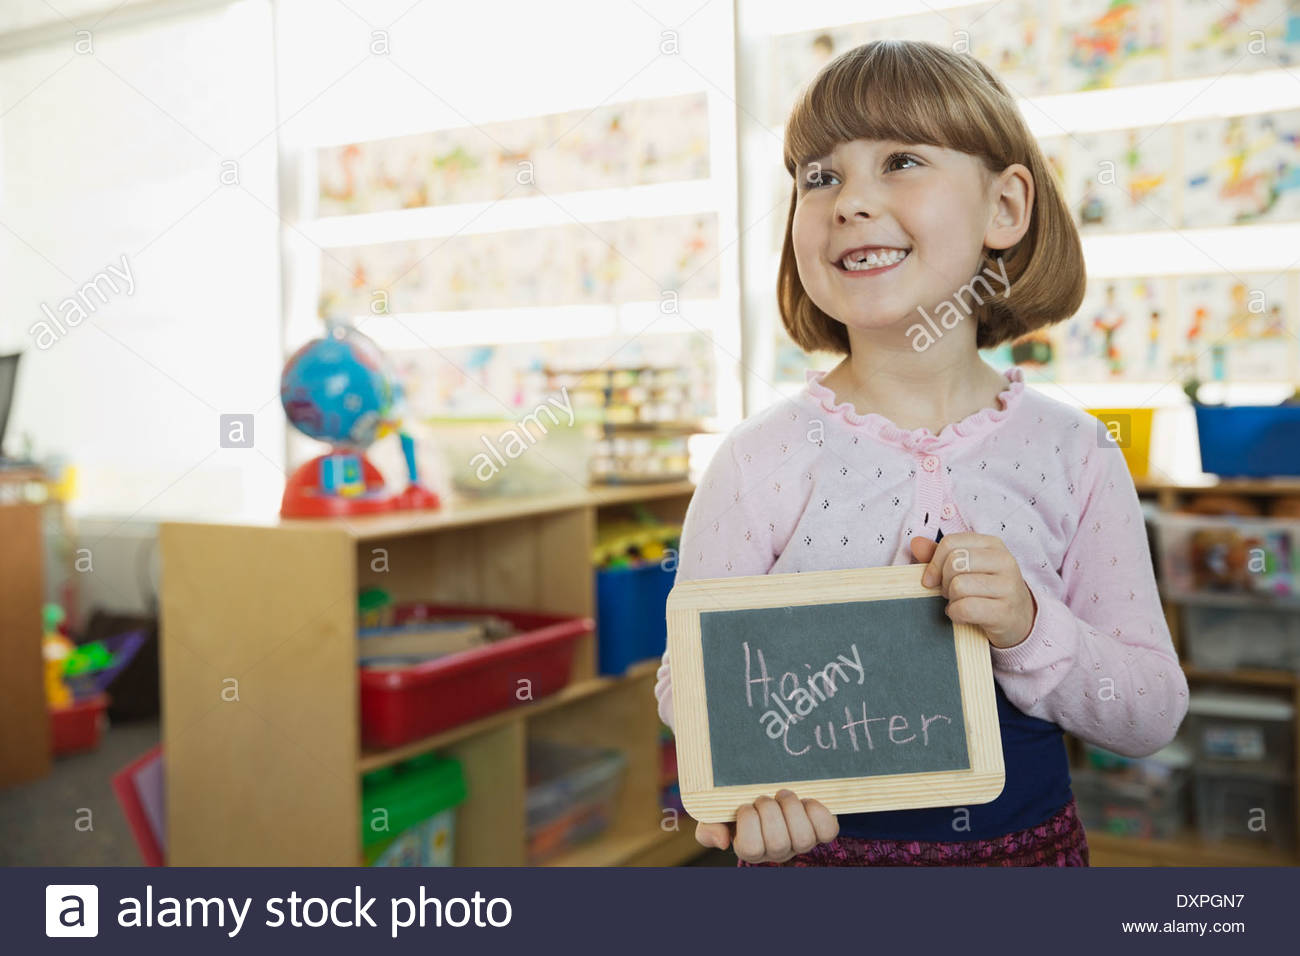 Cute girl holding slate with 'Hair Cutter' written on it - Stock Image